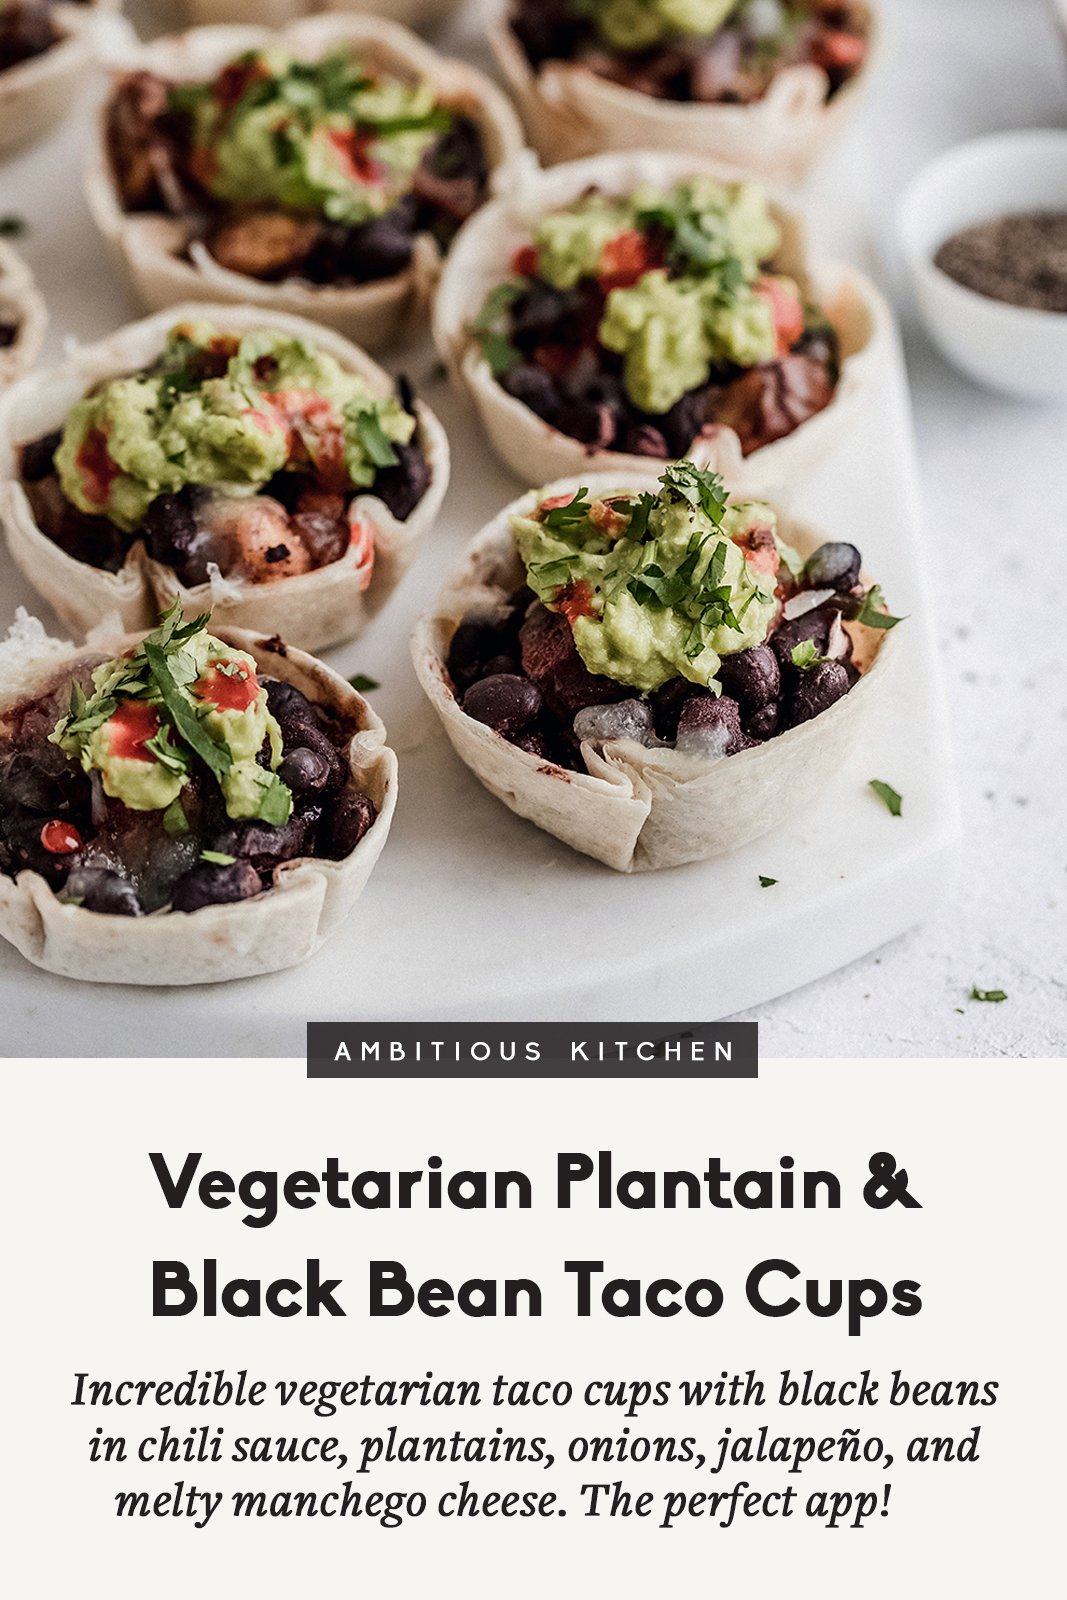 black bean and plantain taco cups with a title underneath